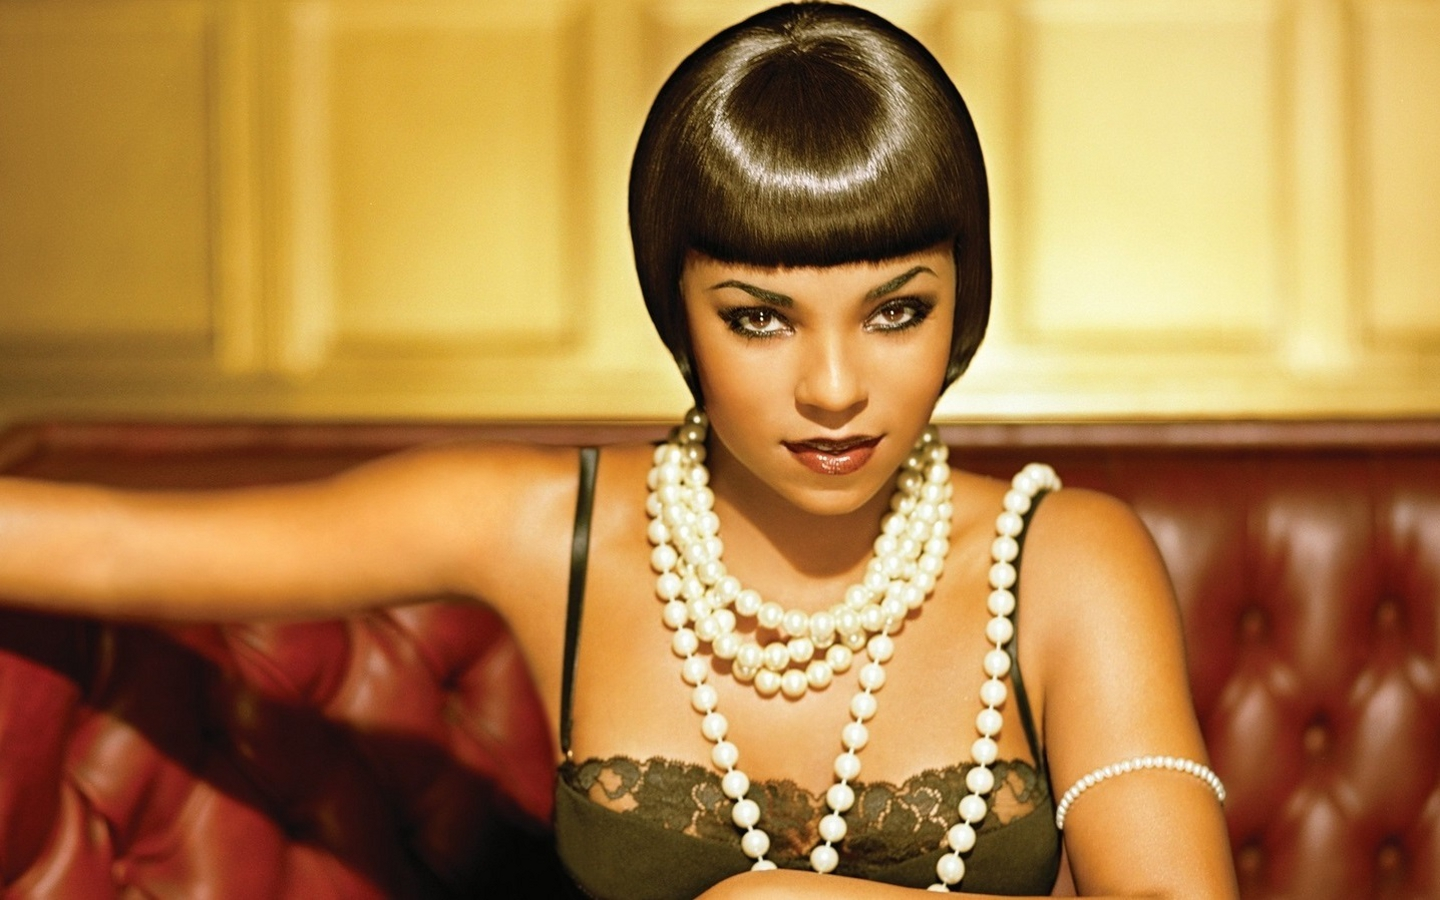 Girly Wallpapers Hd Ashanti Images Ashanti Femme Fatale Hd Wallpaper And